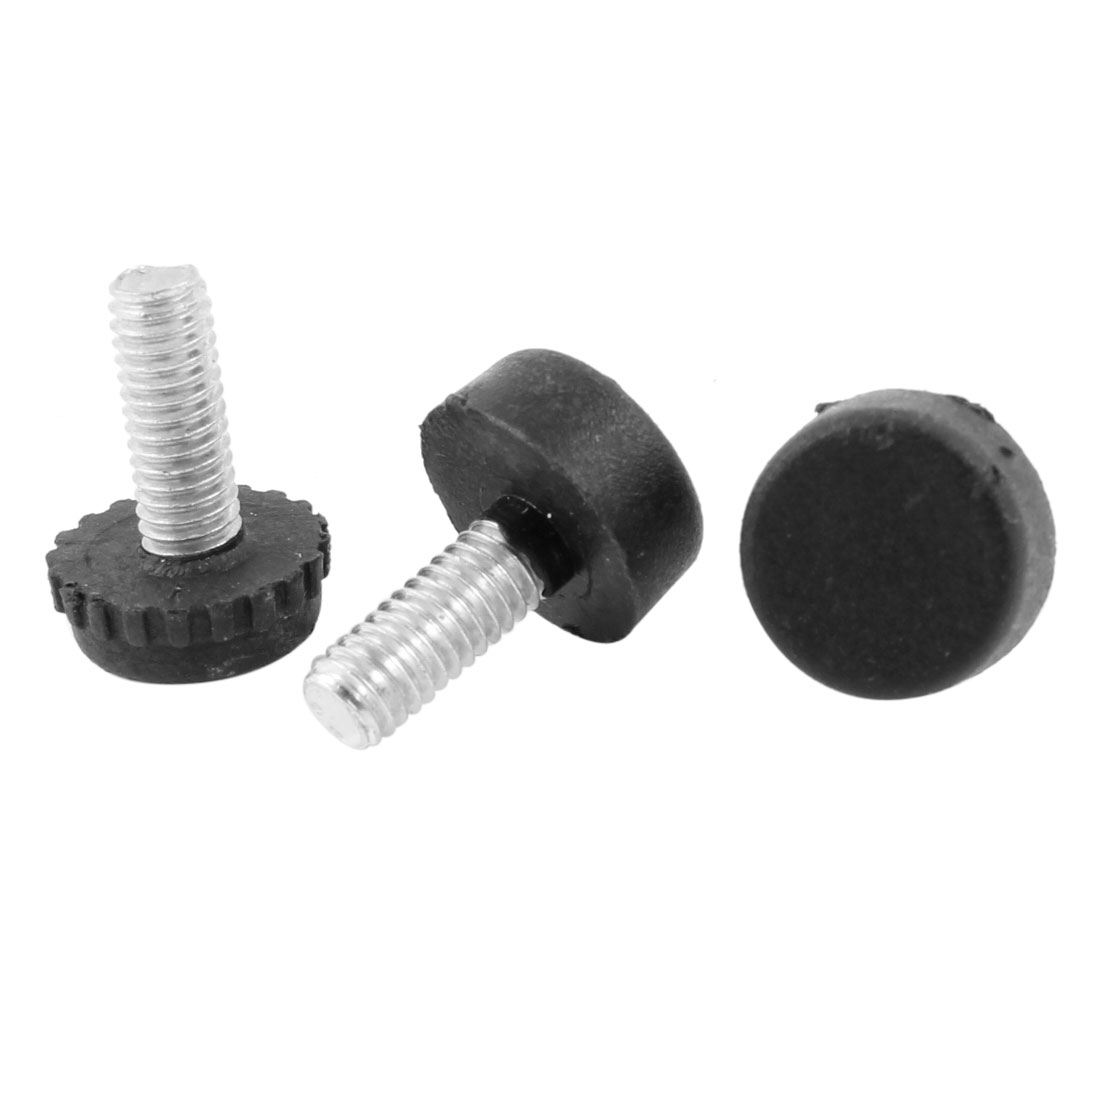 3 Pcs Screw On Type Furniture Glide Leveling Foot Adjuster 6mmx15mmx20mm